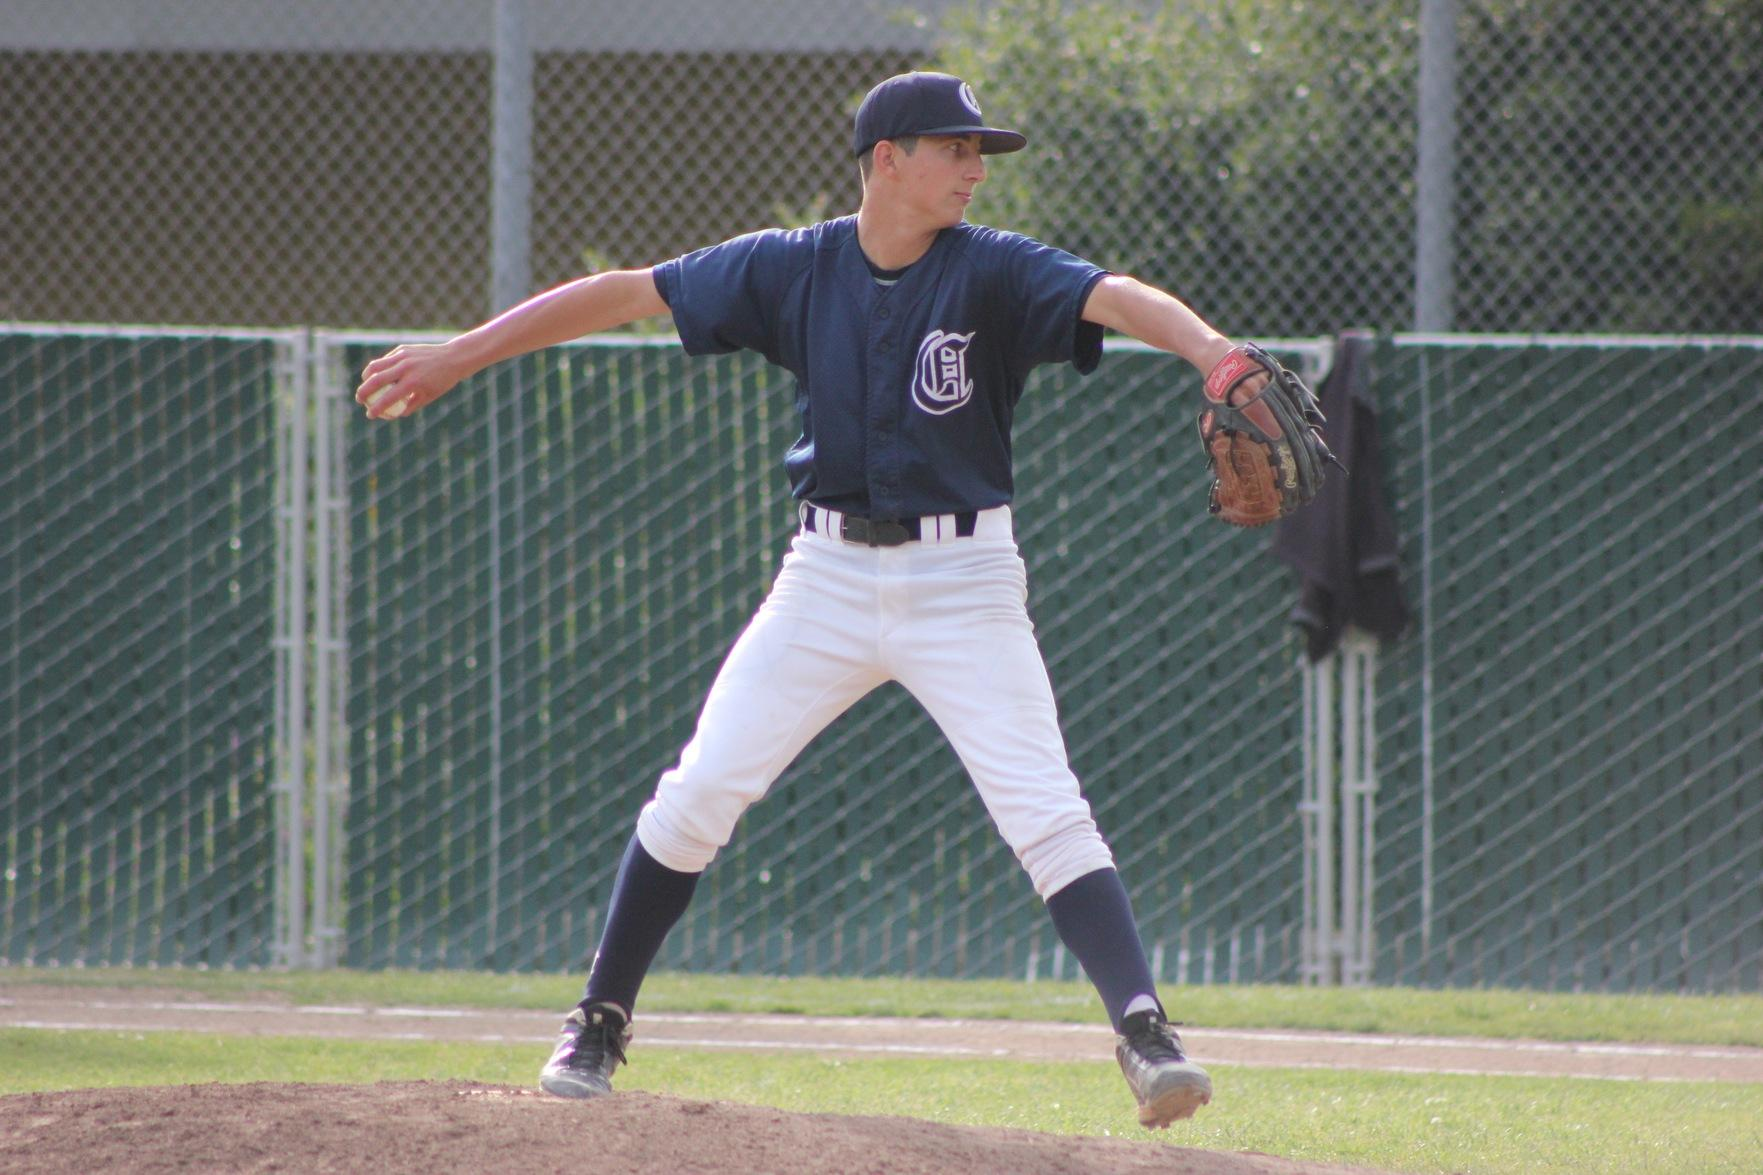 Freshman pitcher David Bedrosian winds up for a pitch. Bedrosian only allowed one of the nine runs allowed by the Scots.